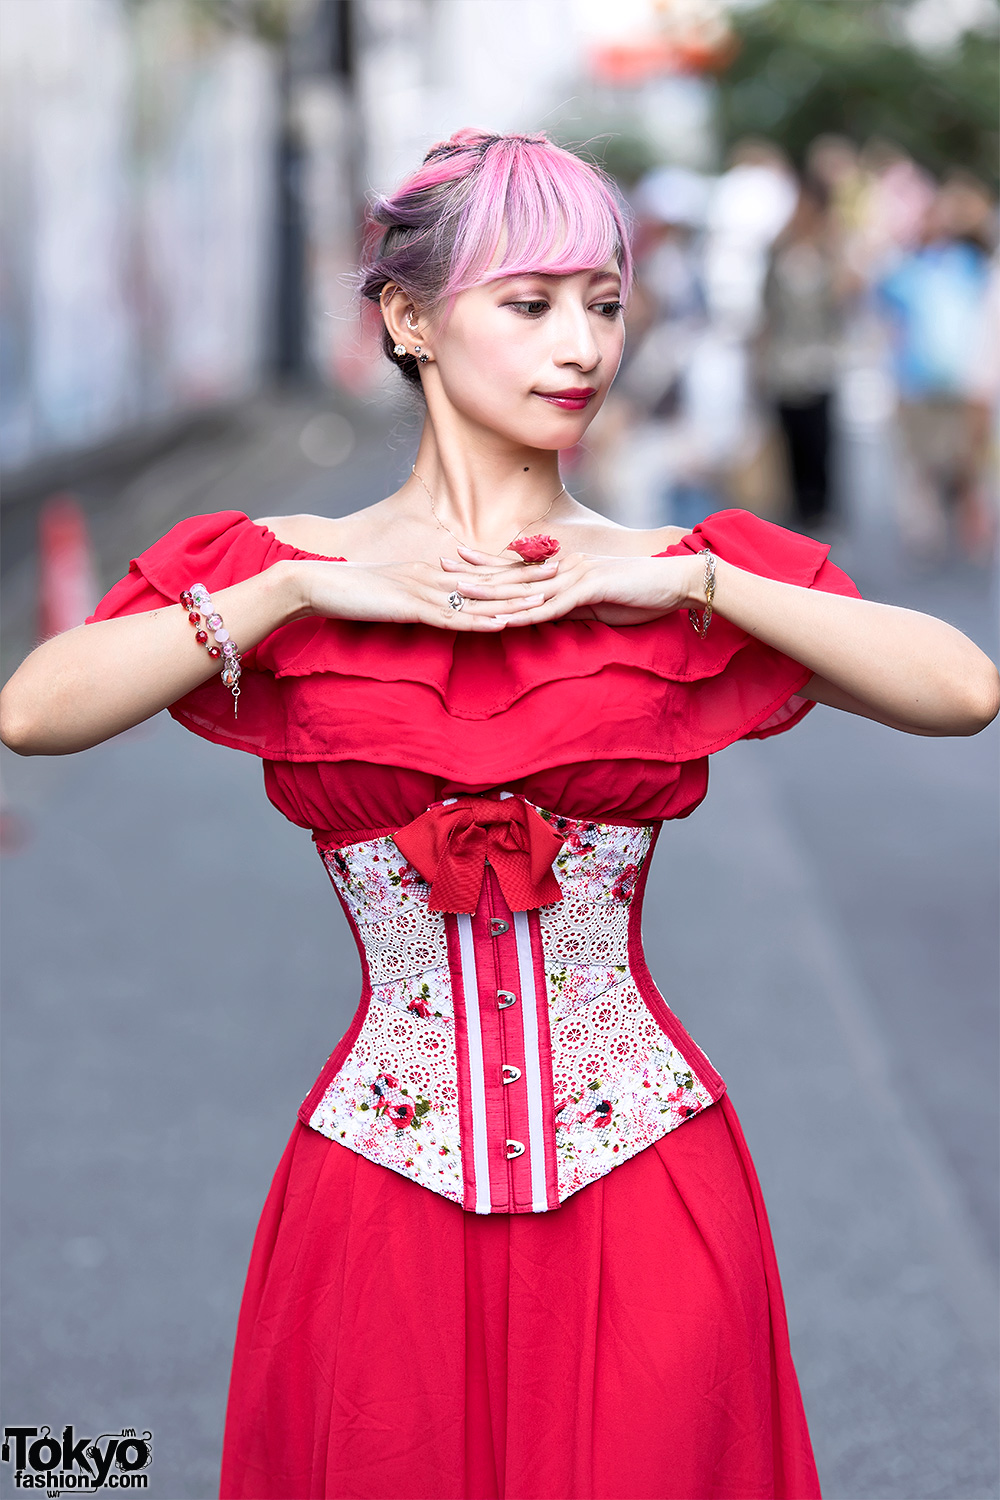 Handmade Japanese Corsets By Unisex Peanuts On The Street